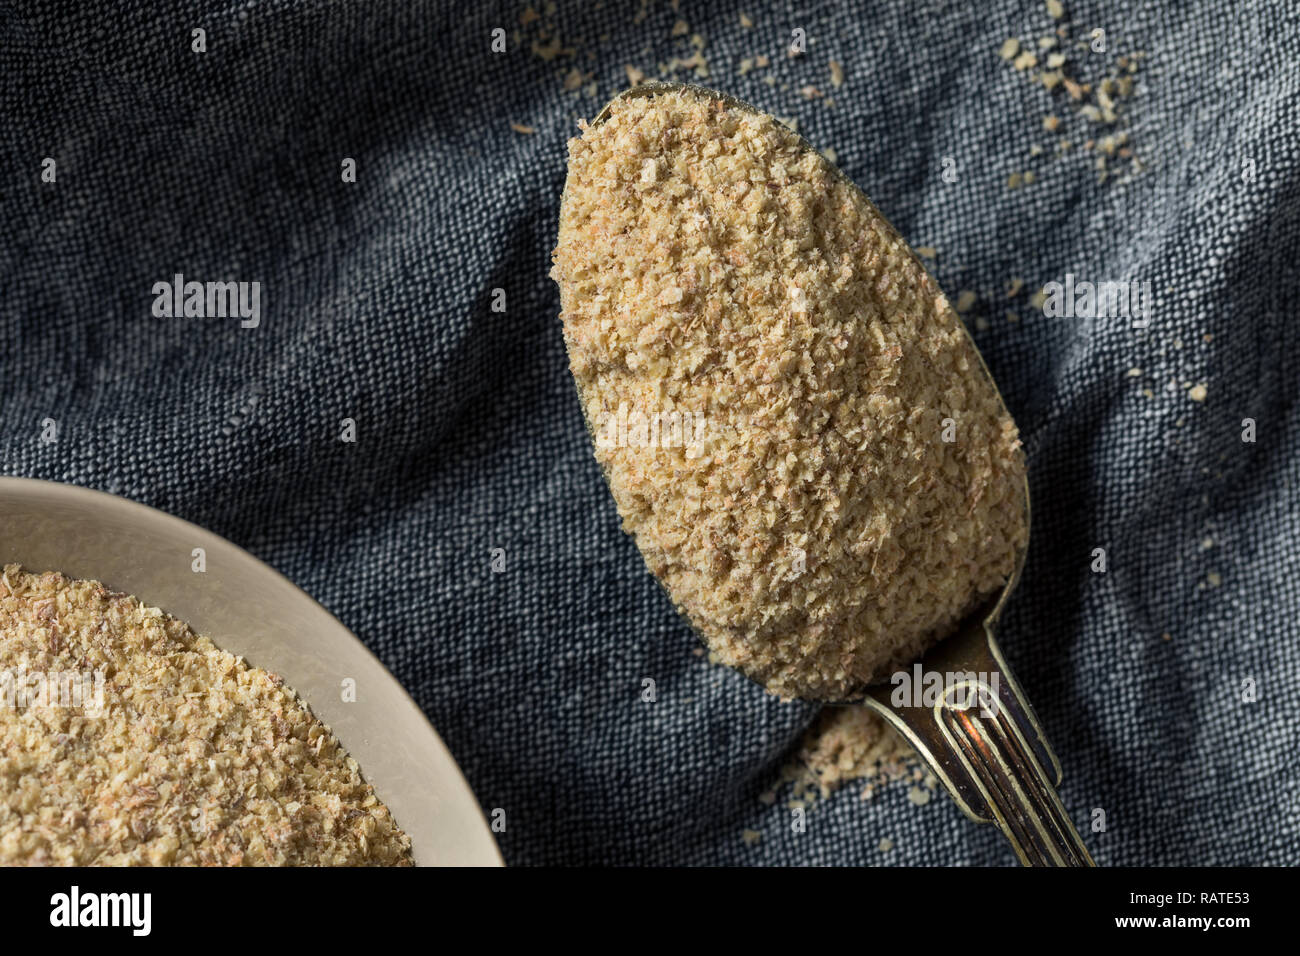 Dry Organic Wheat Germ Flour Ready to Cook With - Stock Image